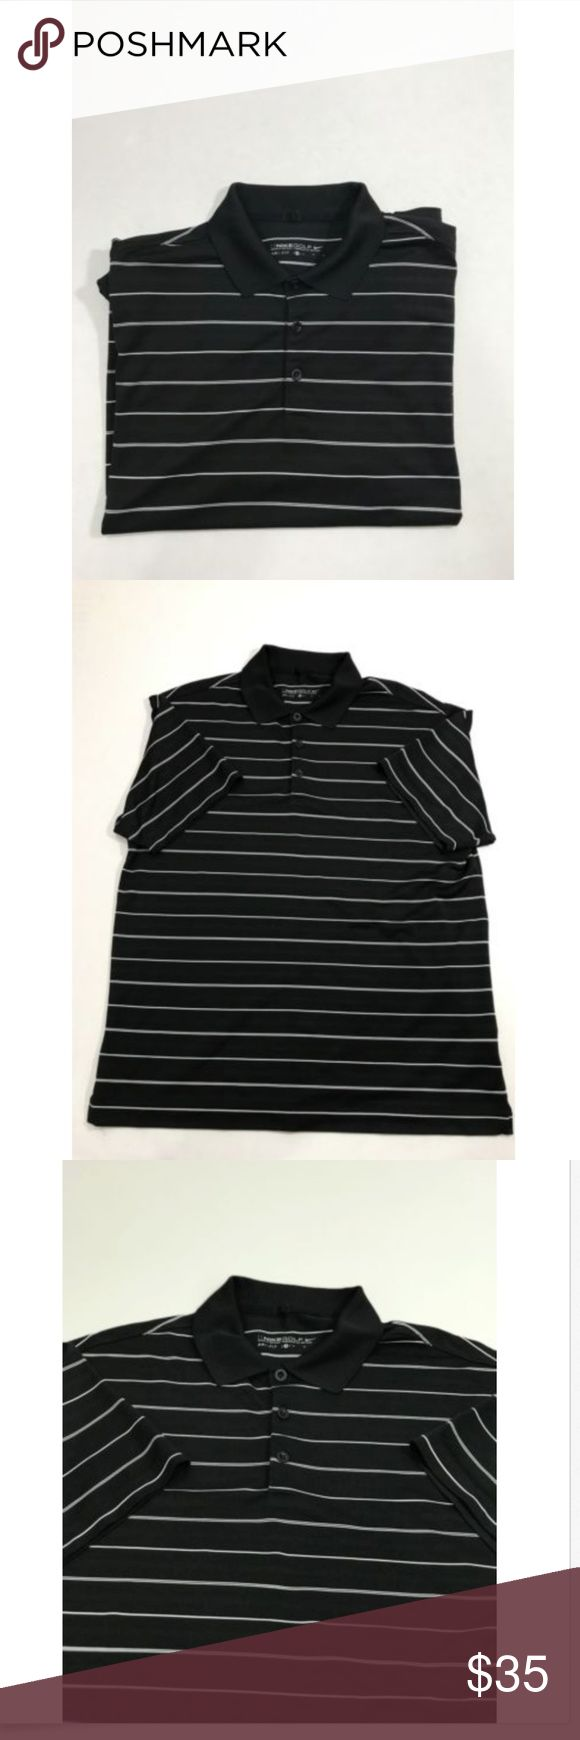 Nike Golf Men Dri-Fit Stripe Polo - Black/White M Nike Golf Men Dri-Fit  Stripe Polo - Black/White size M  New without tags   Please see pictures for full details   Ships fast and safe Shirts Polos